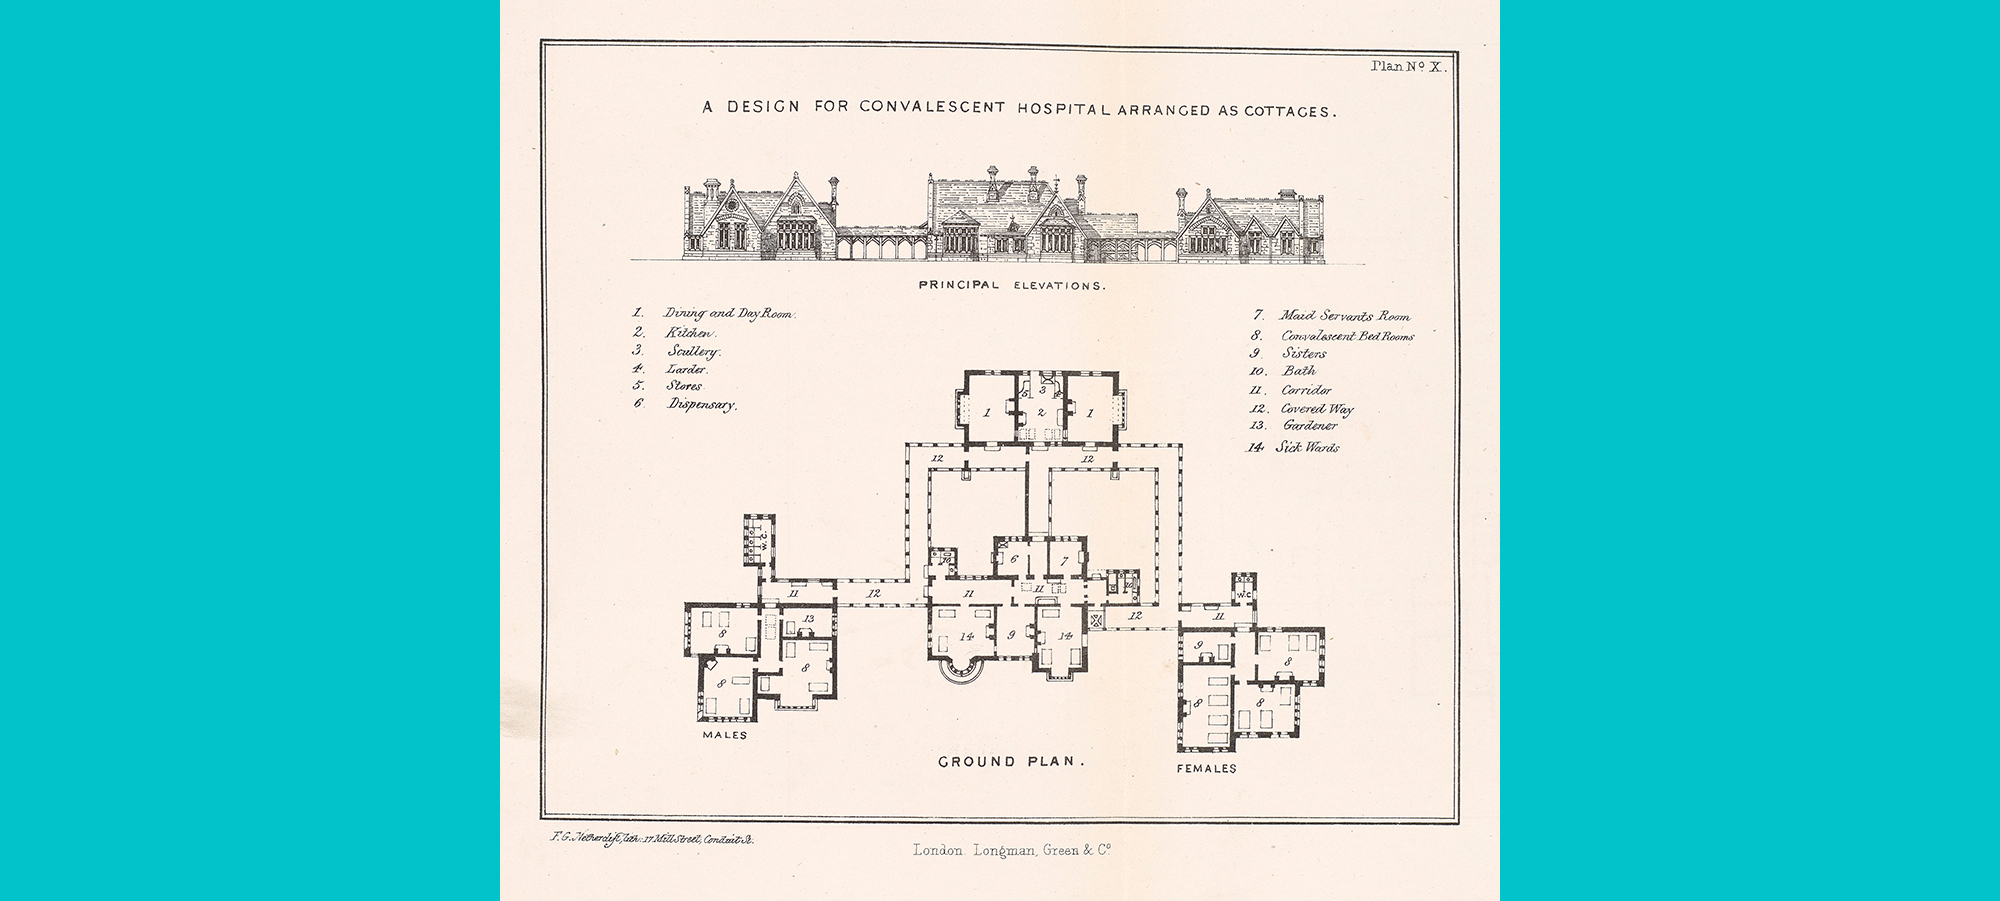 scan of a drawn birds eye architectural plan of a convalescent hospital